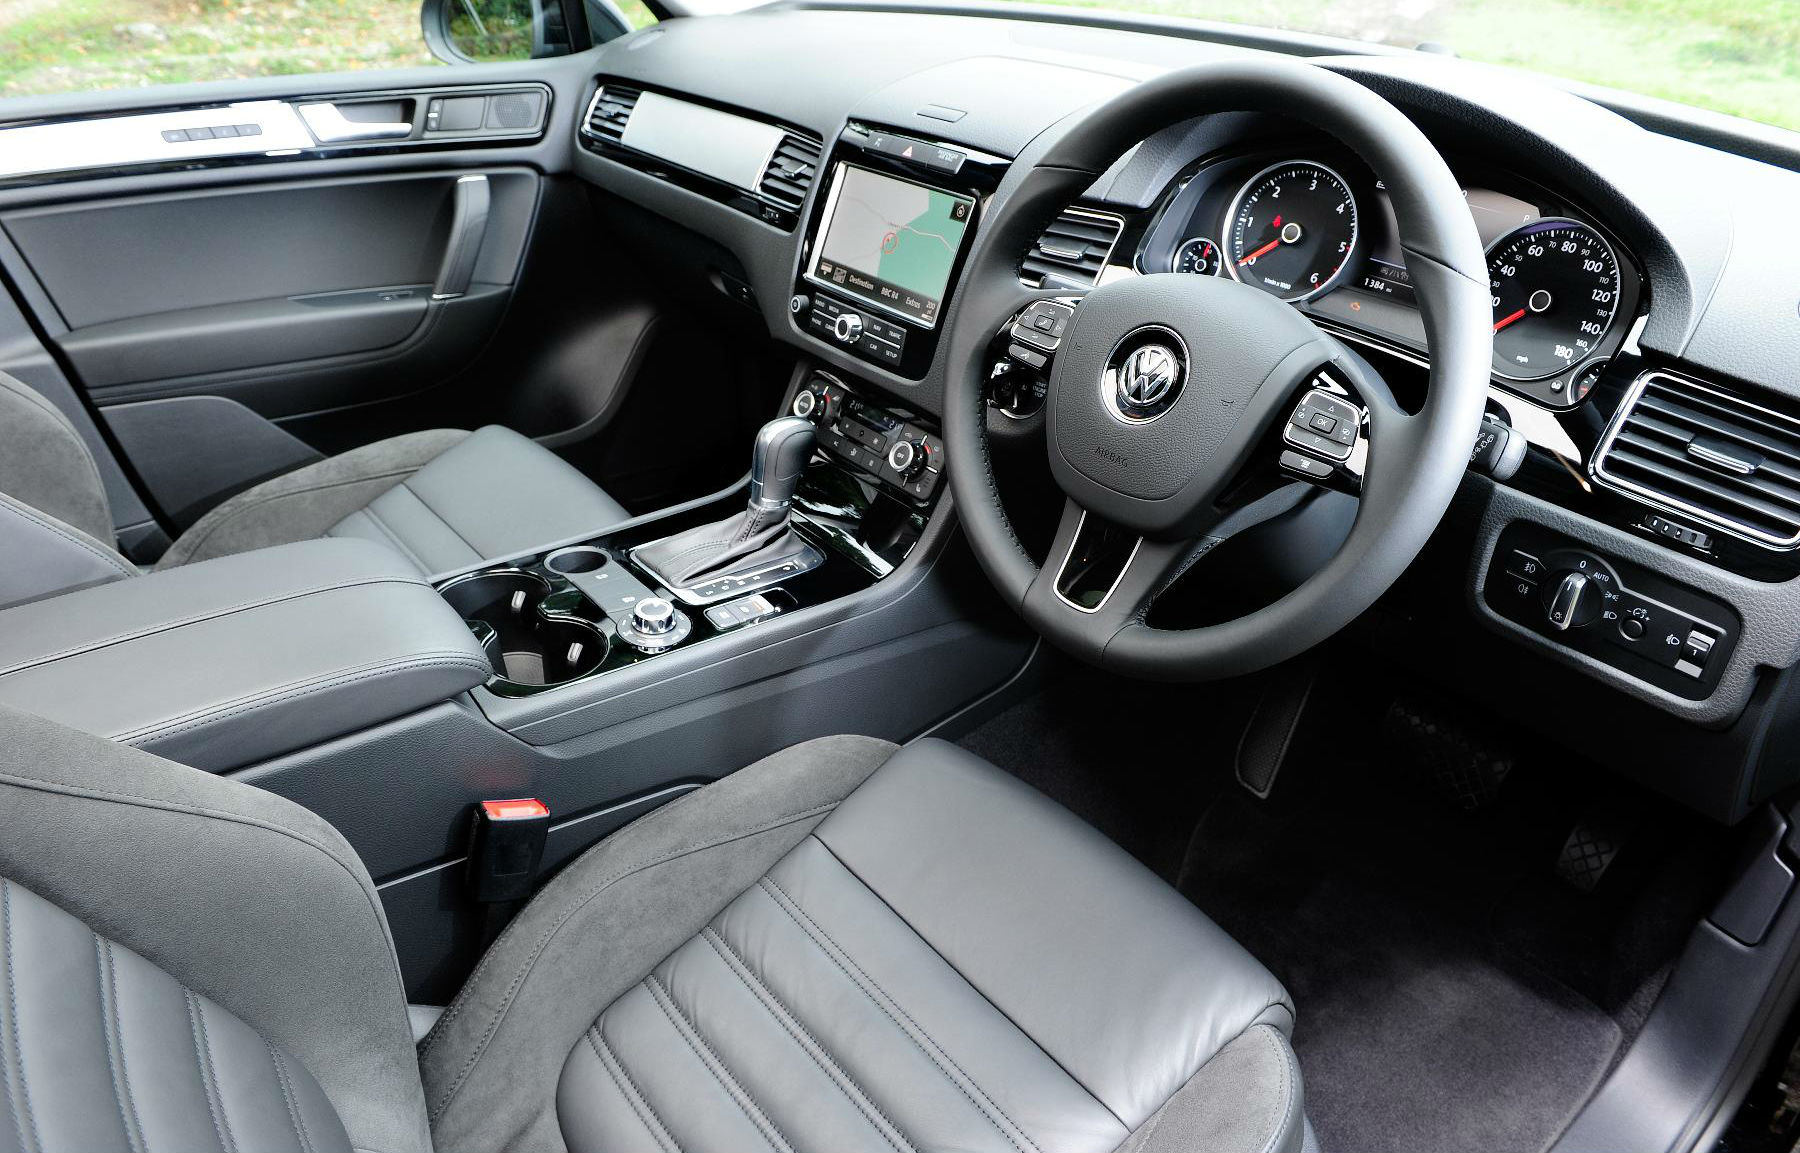 image of a volkswagen touareg car interior